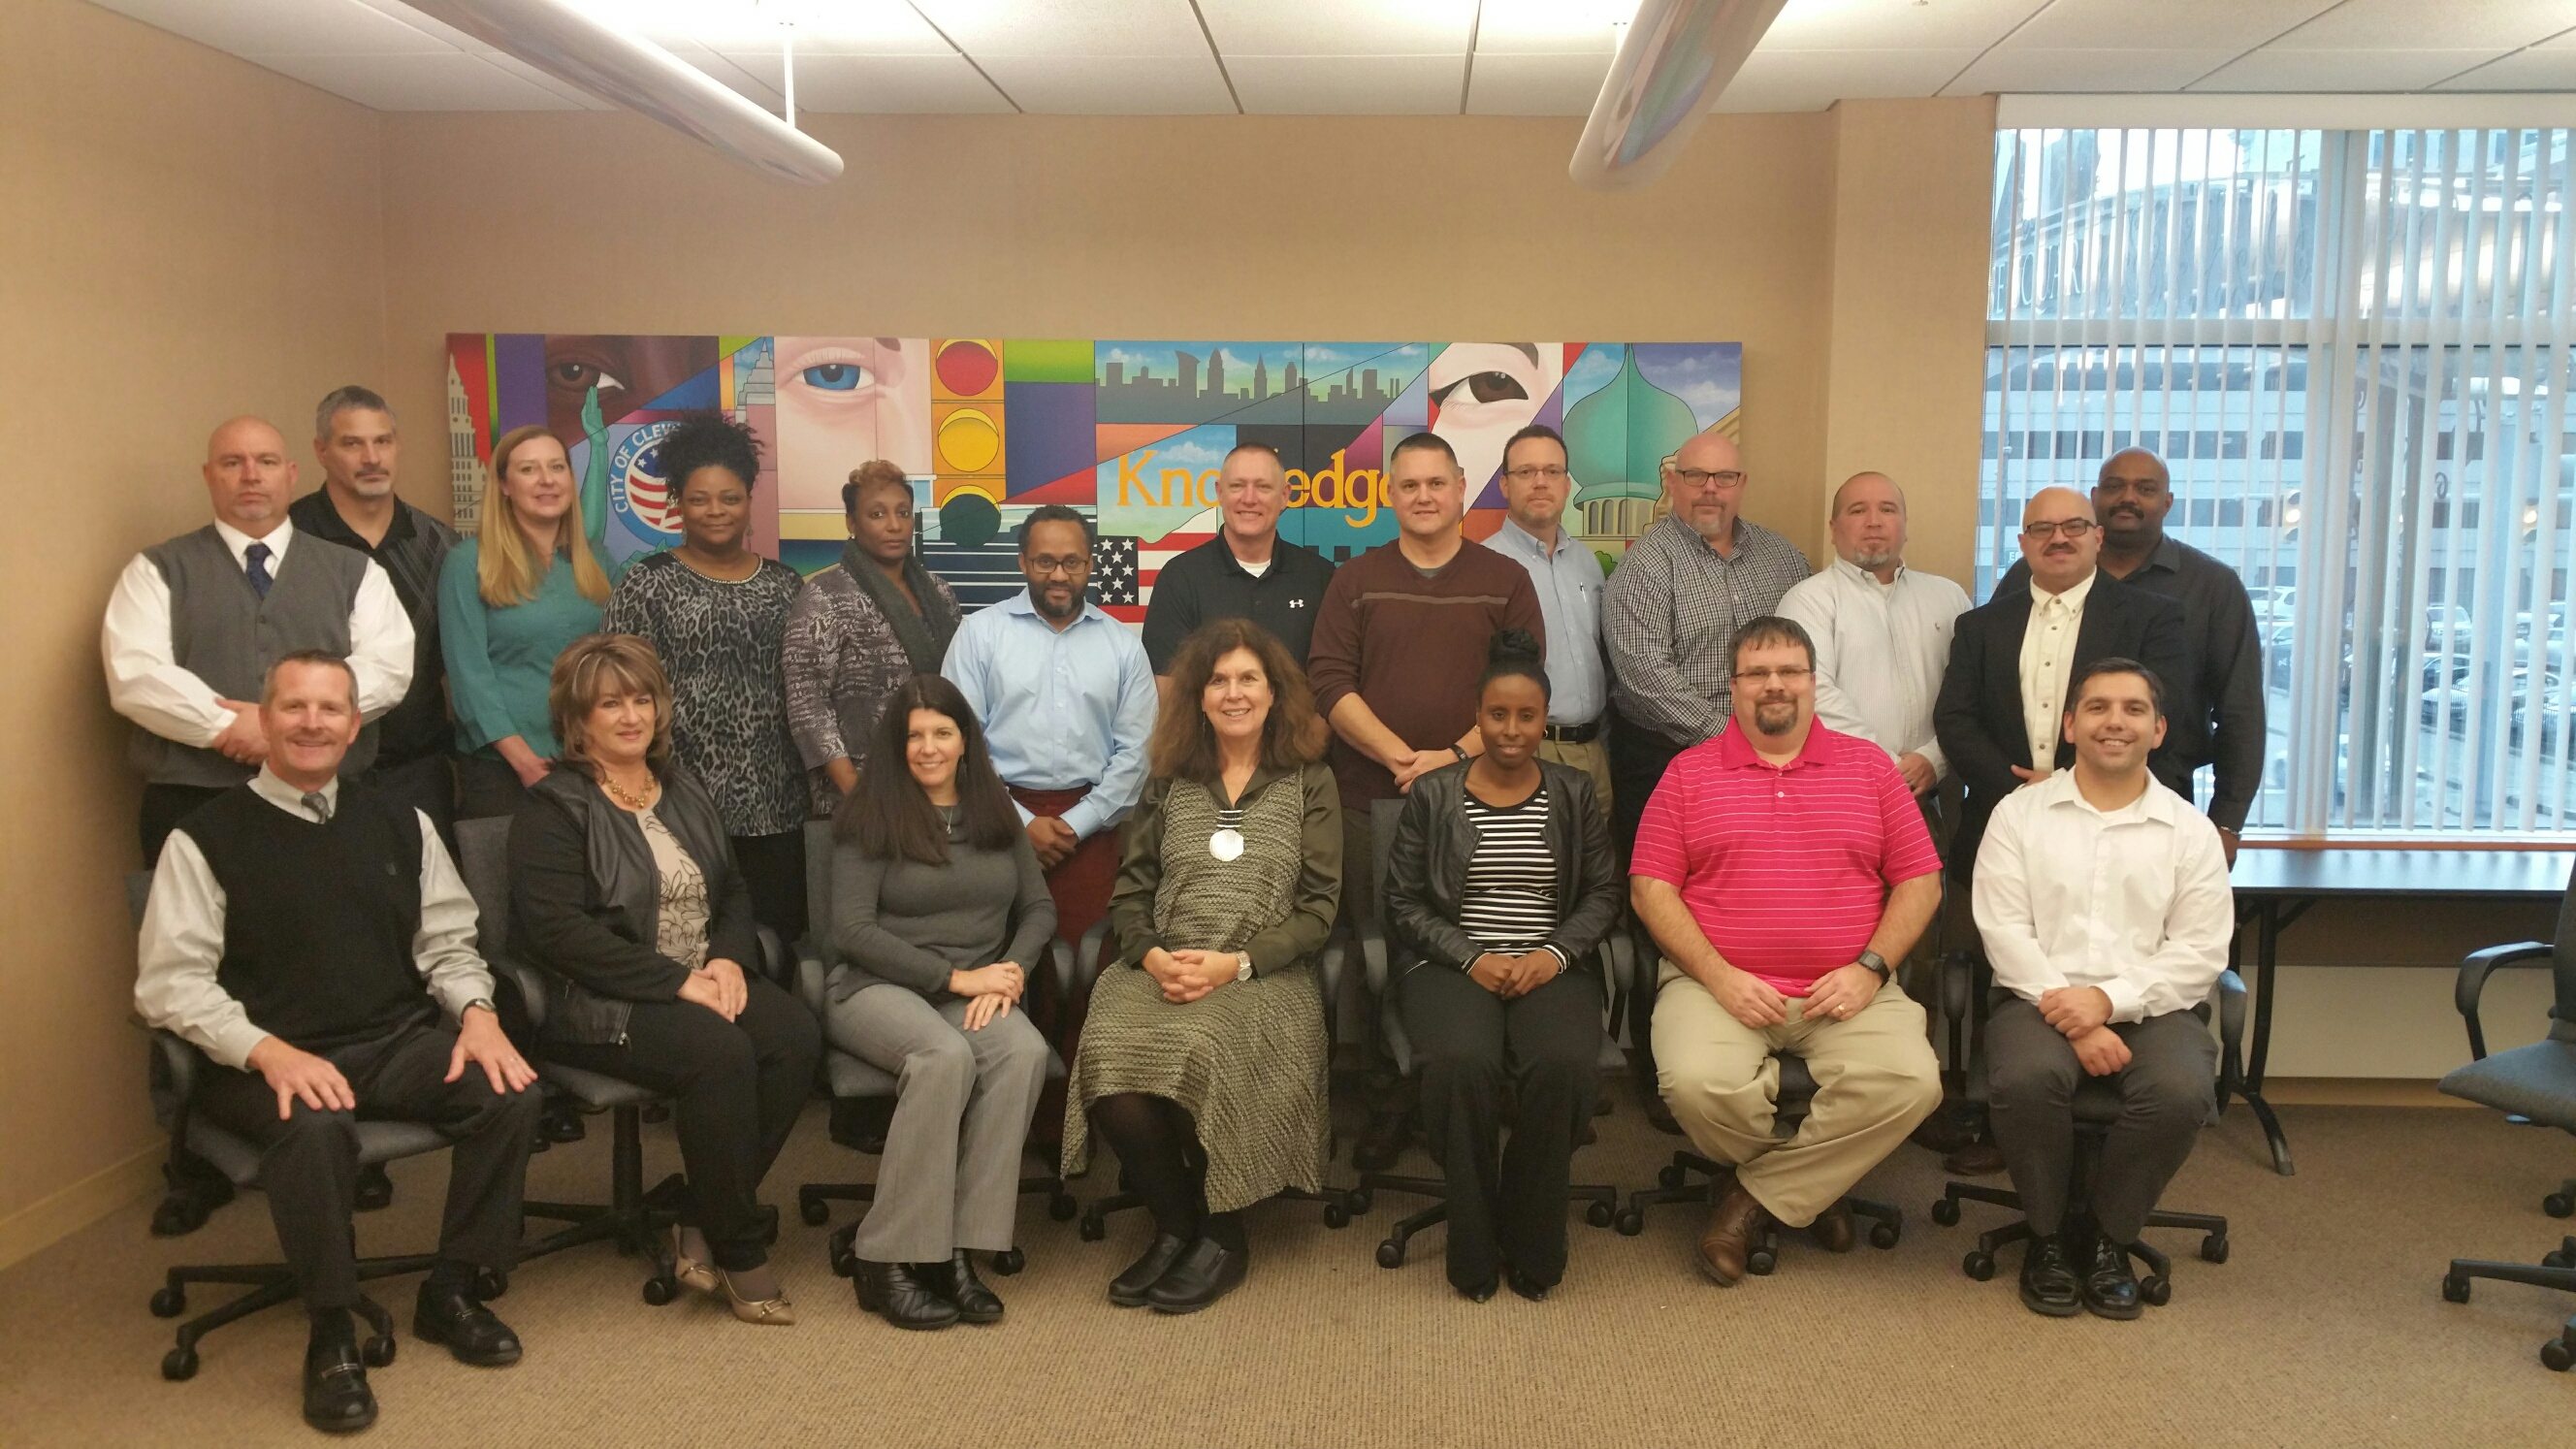 NE Region Staff Complete Leadership Training at Cleveland State University